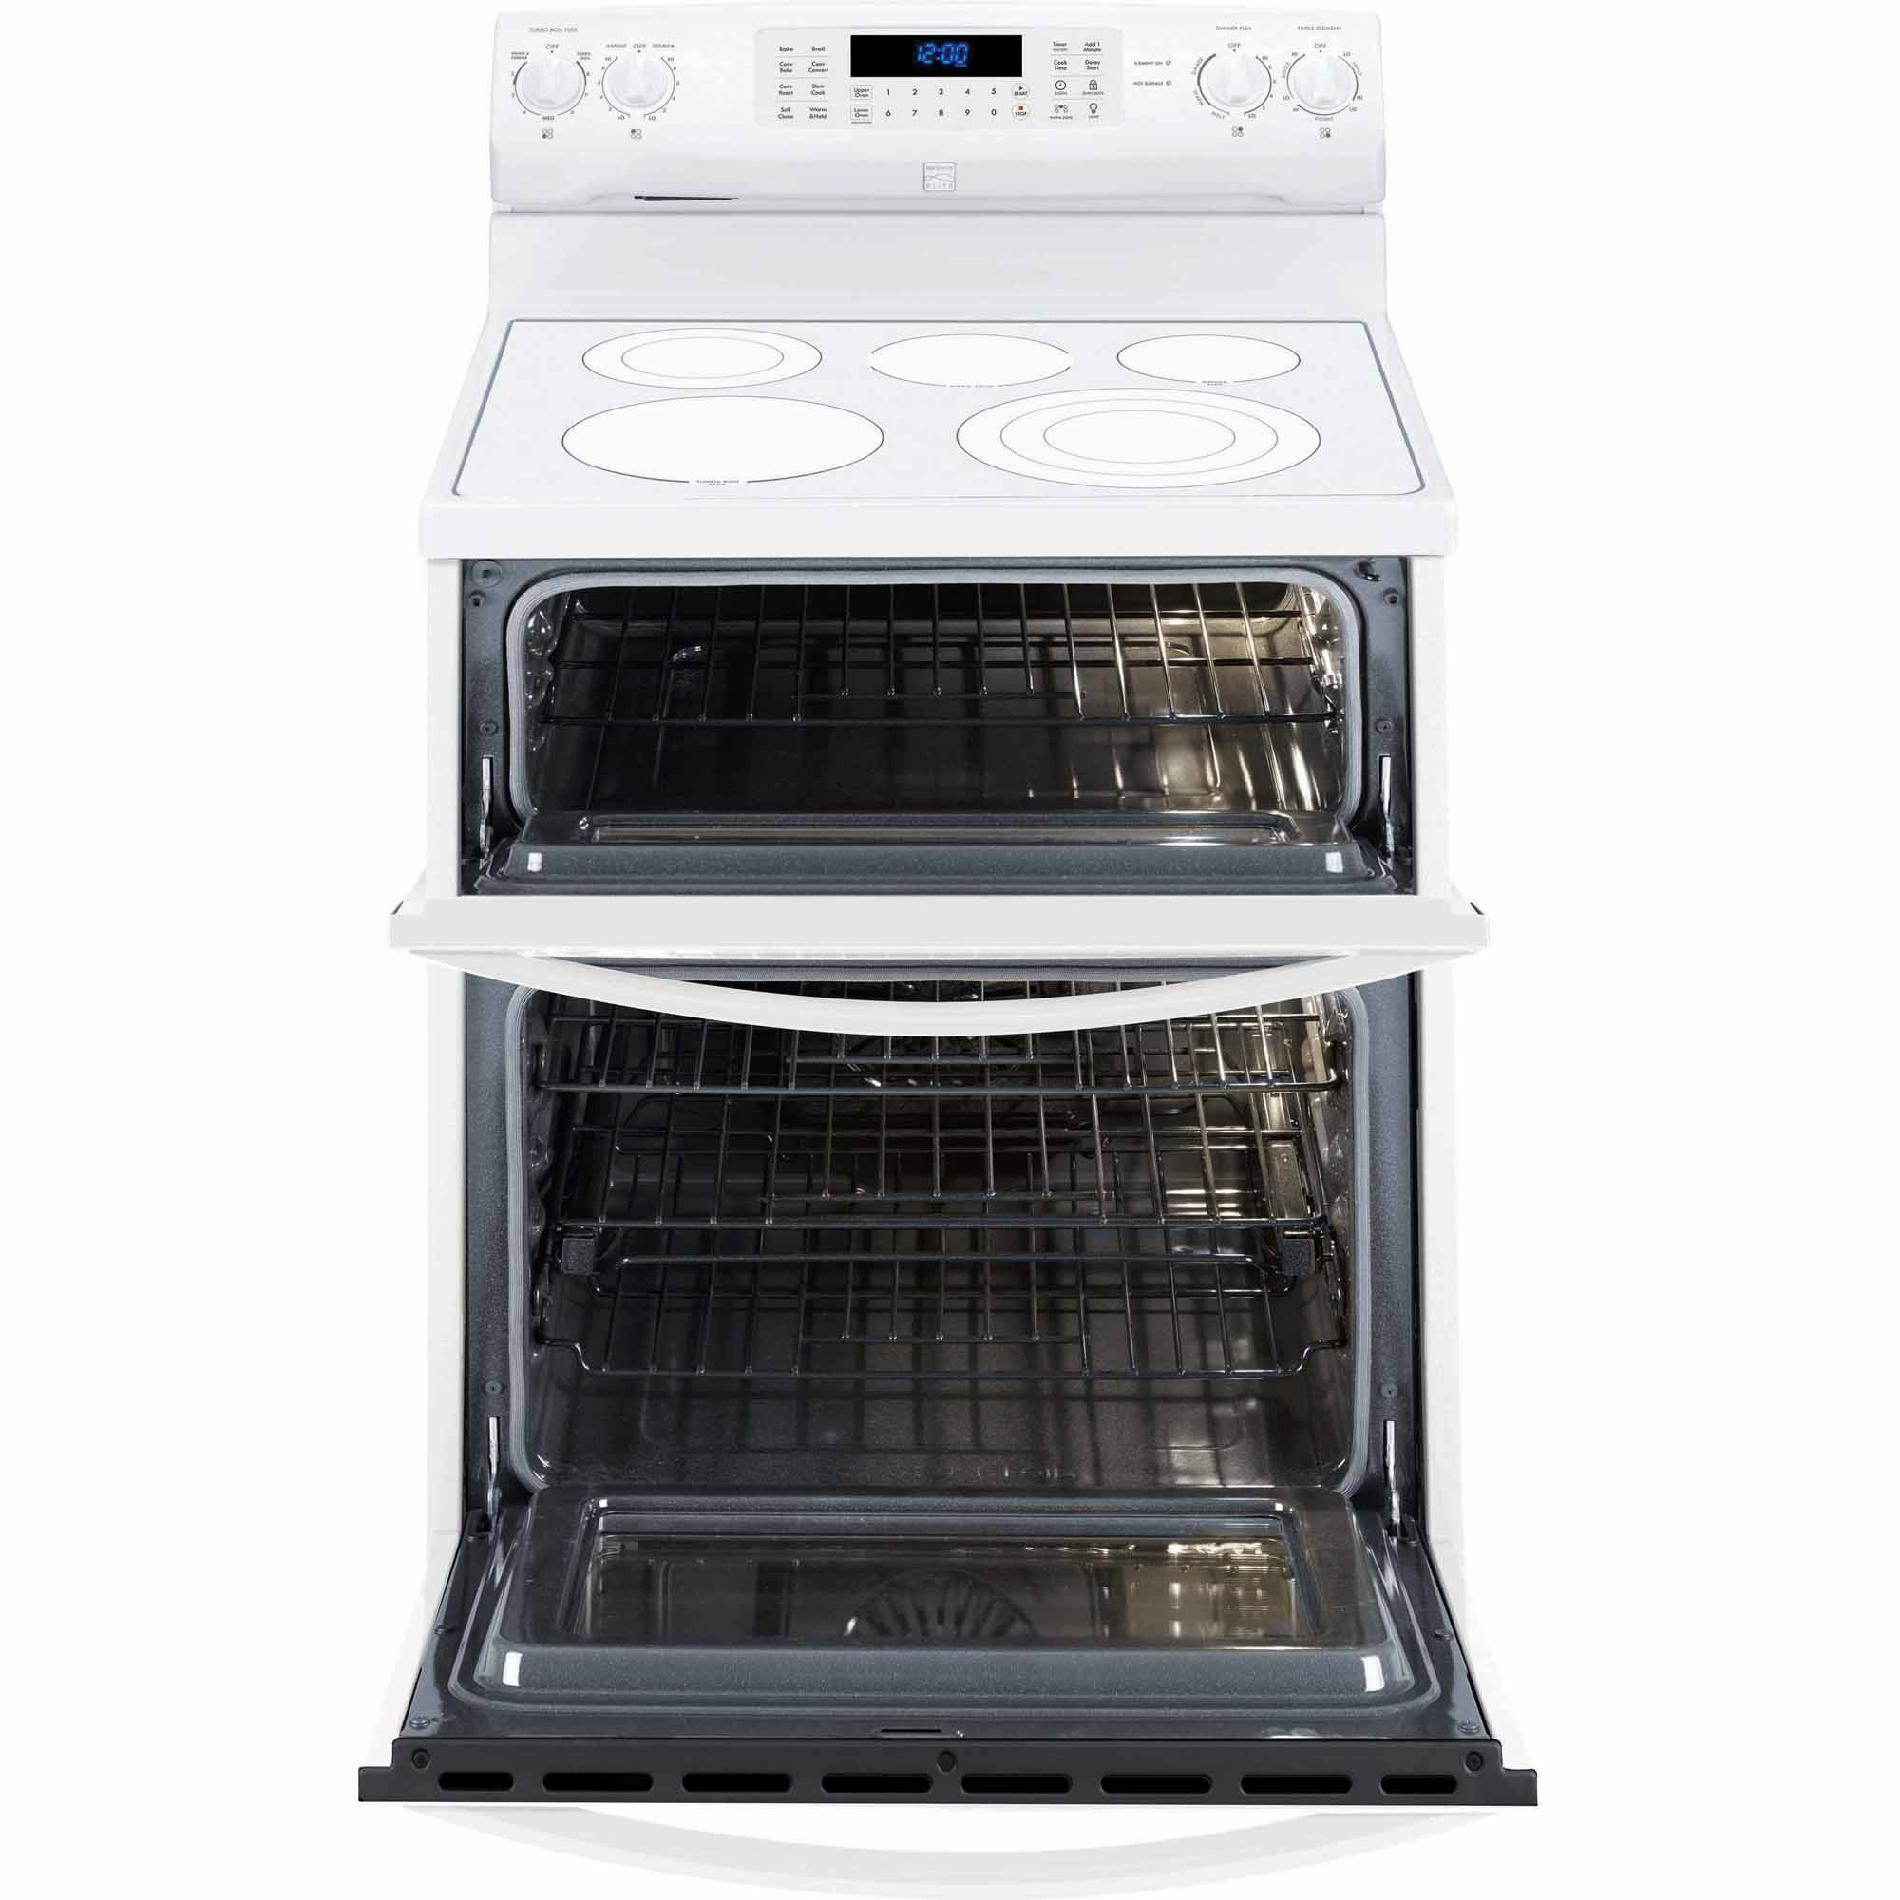 Kenmore Elite 97312 6.9 cu. ft. Double-Oven Electric Range w/ True Convection - White